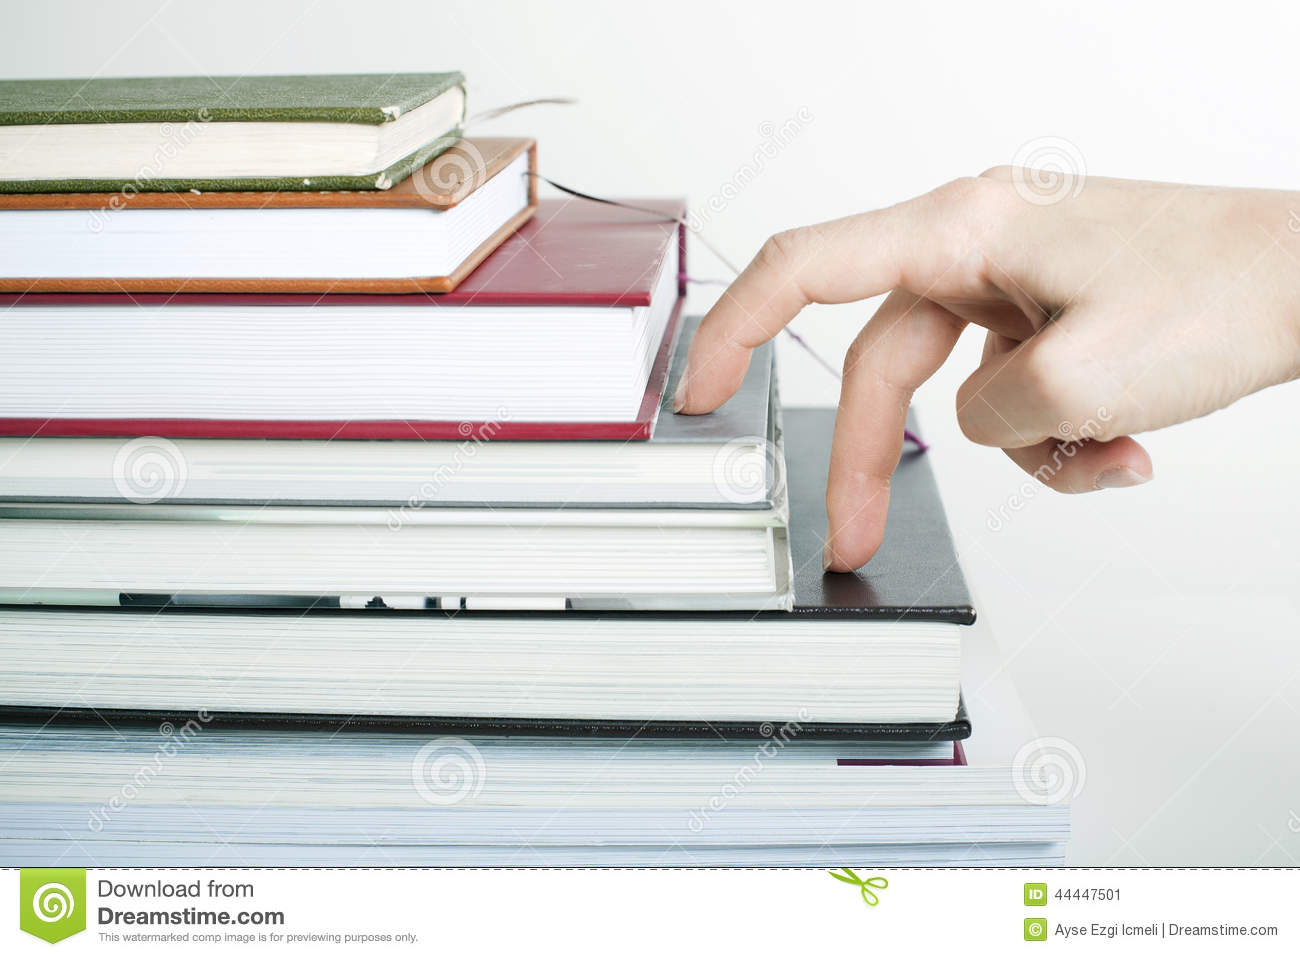 """importance of education to succeed The oxford dictionary defines education as """"the process of receiving or   however, it is important to know that there are many roads to success."""